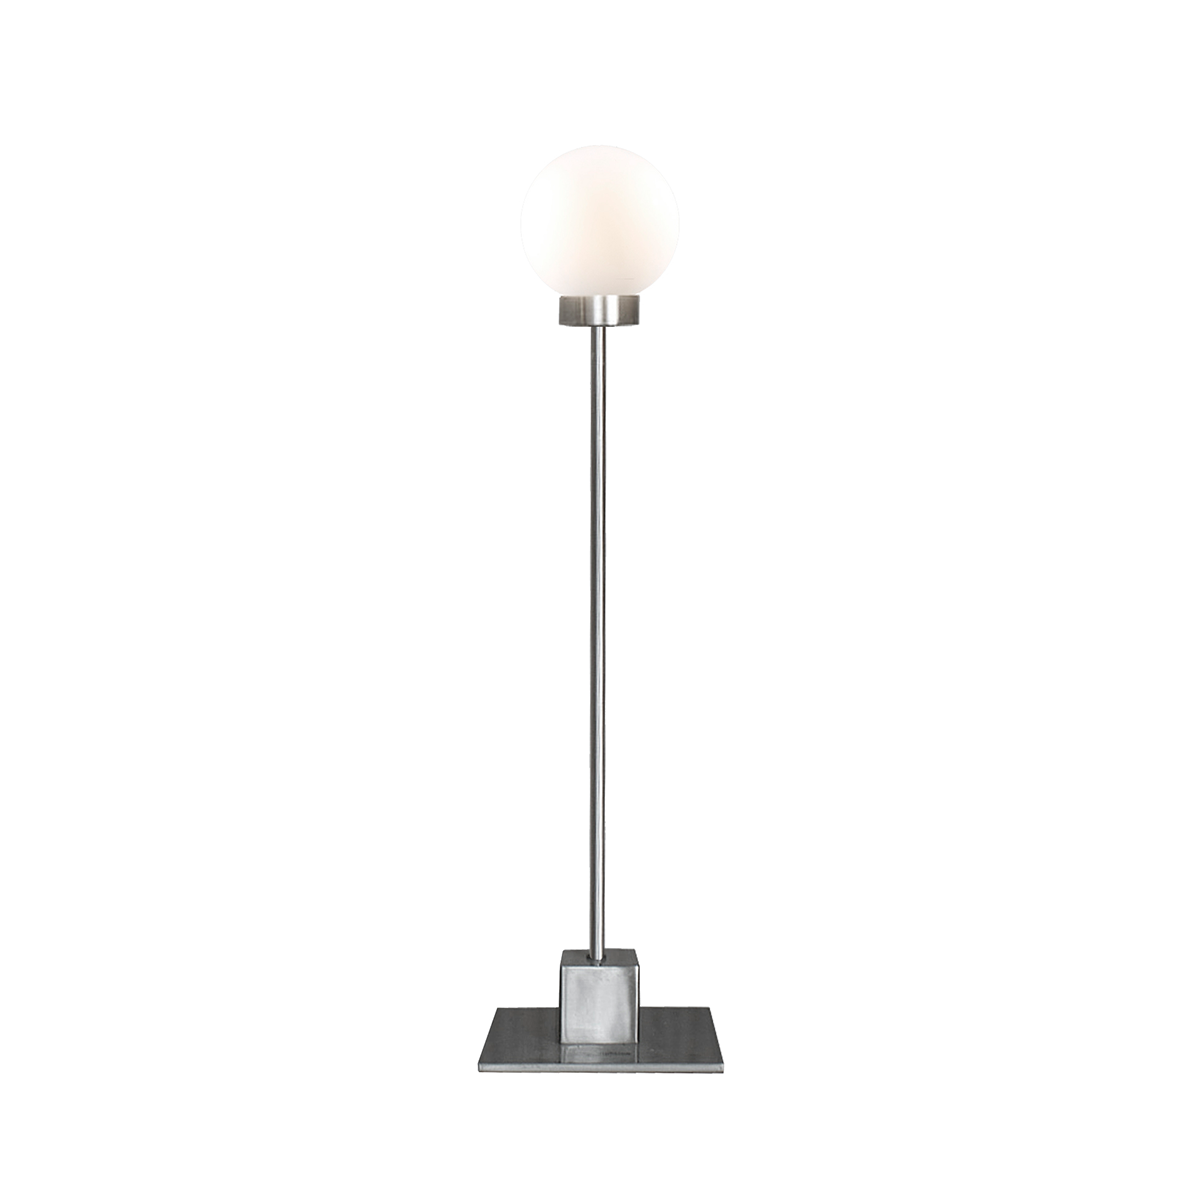 Northern Snowball Small Table Lamp 雪球系列 桌燈